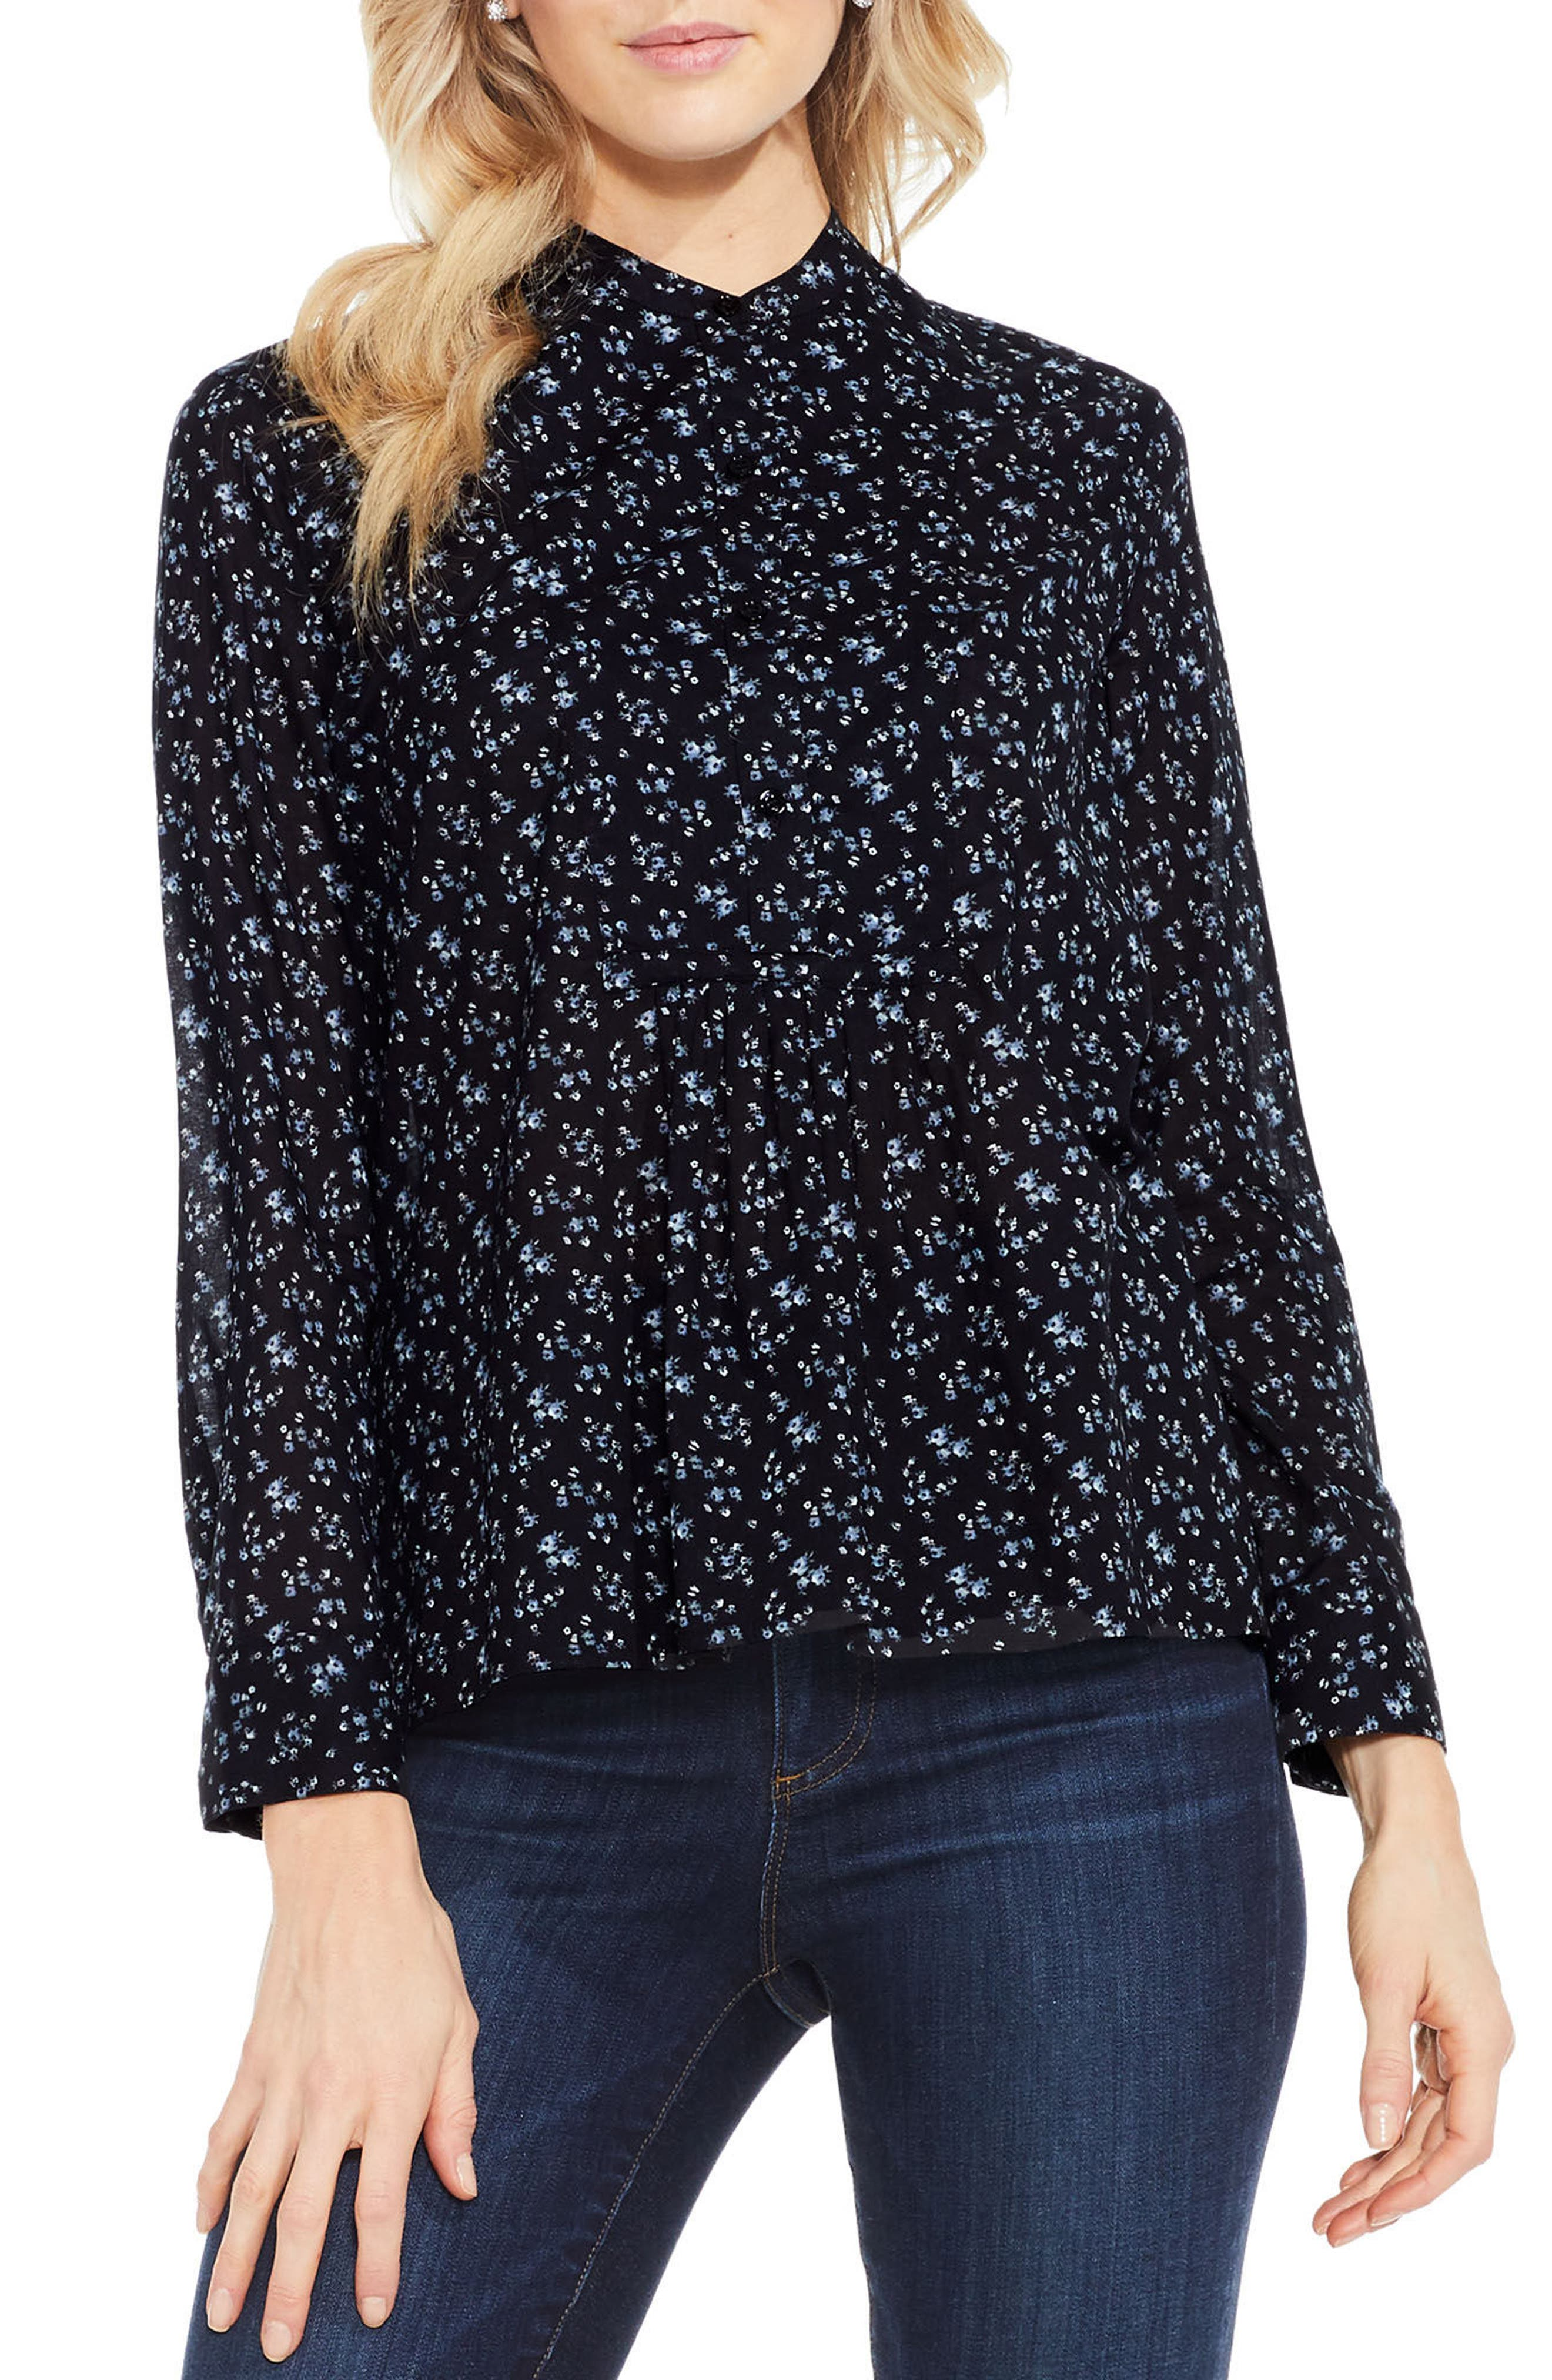 Alternate Image 1 Selected - Two by Vince Camuto Mini Bouquet Top